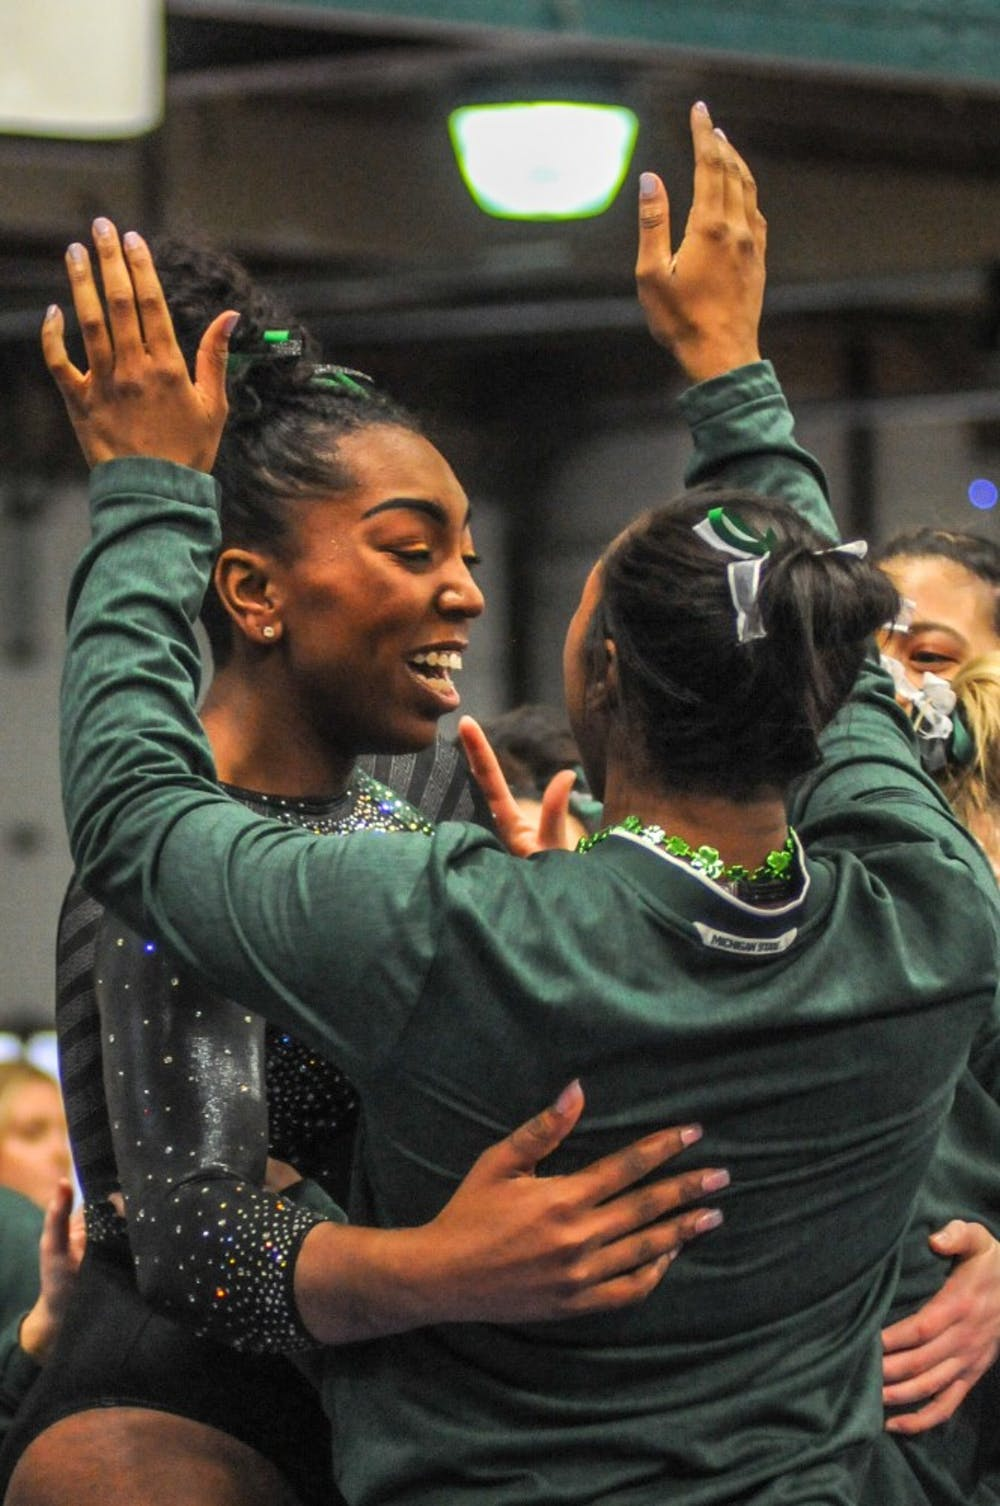 The Spartans celebrate at the women's gymnastics meet at Jenison Field House on March 17, 2019. The Spartans placed first against Alaska, Ball State, UIC.